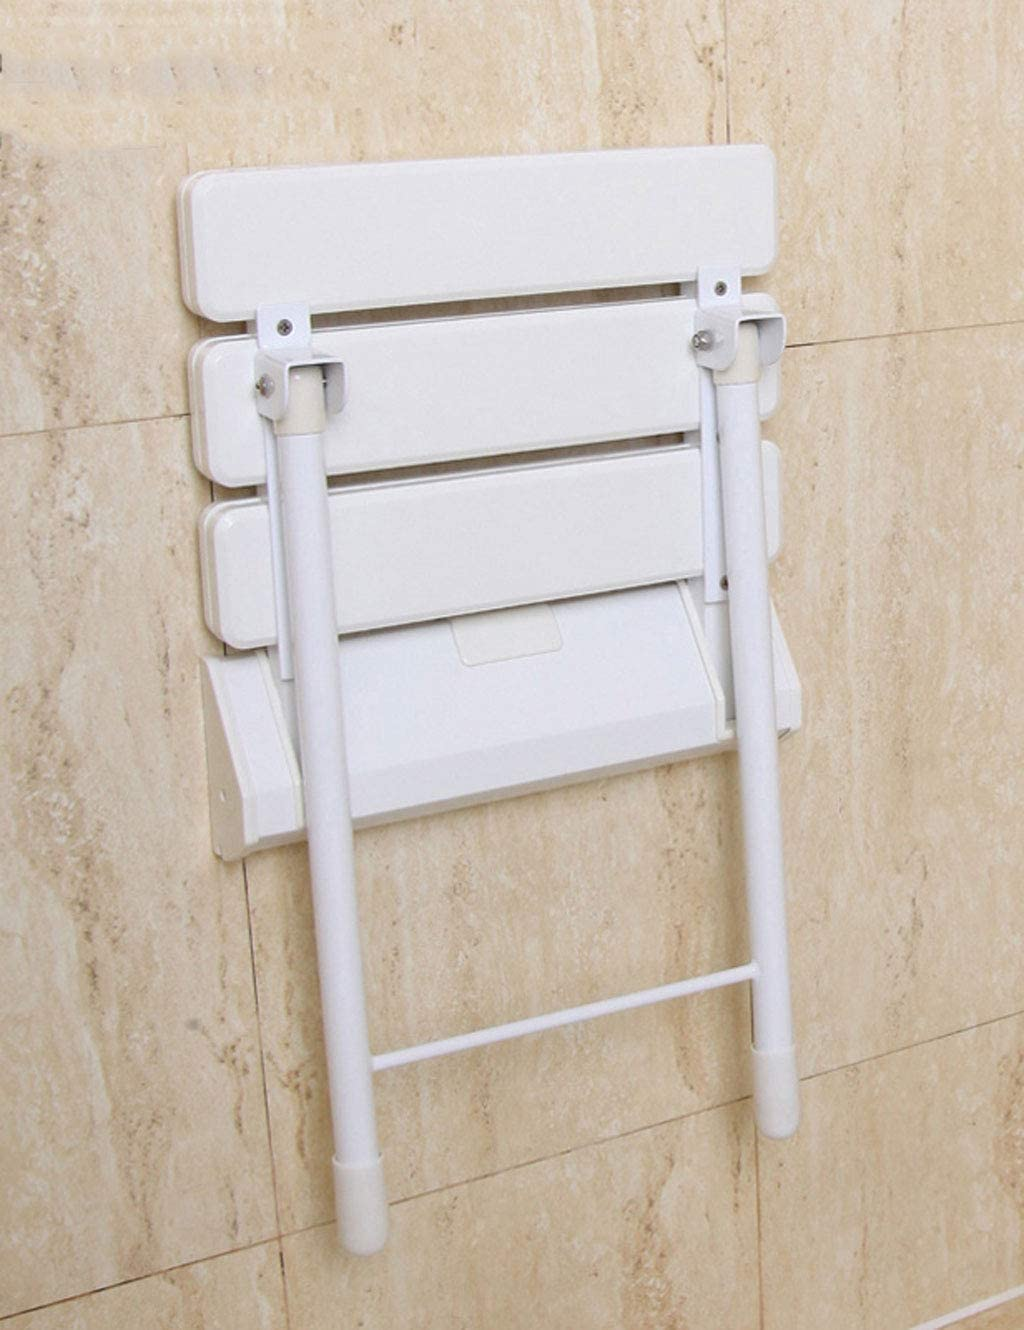 NIHAOA Portable folding chair Legged Bathroom Folding Chair Elderly Disabled Children Wall-Mounted Bathing Stool Seat,Yellow (Color : White) White